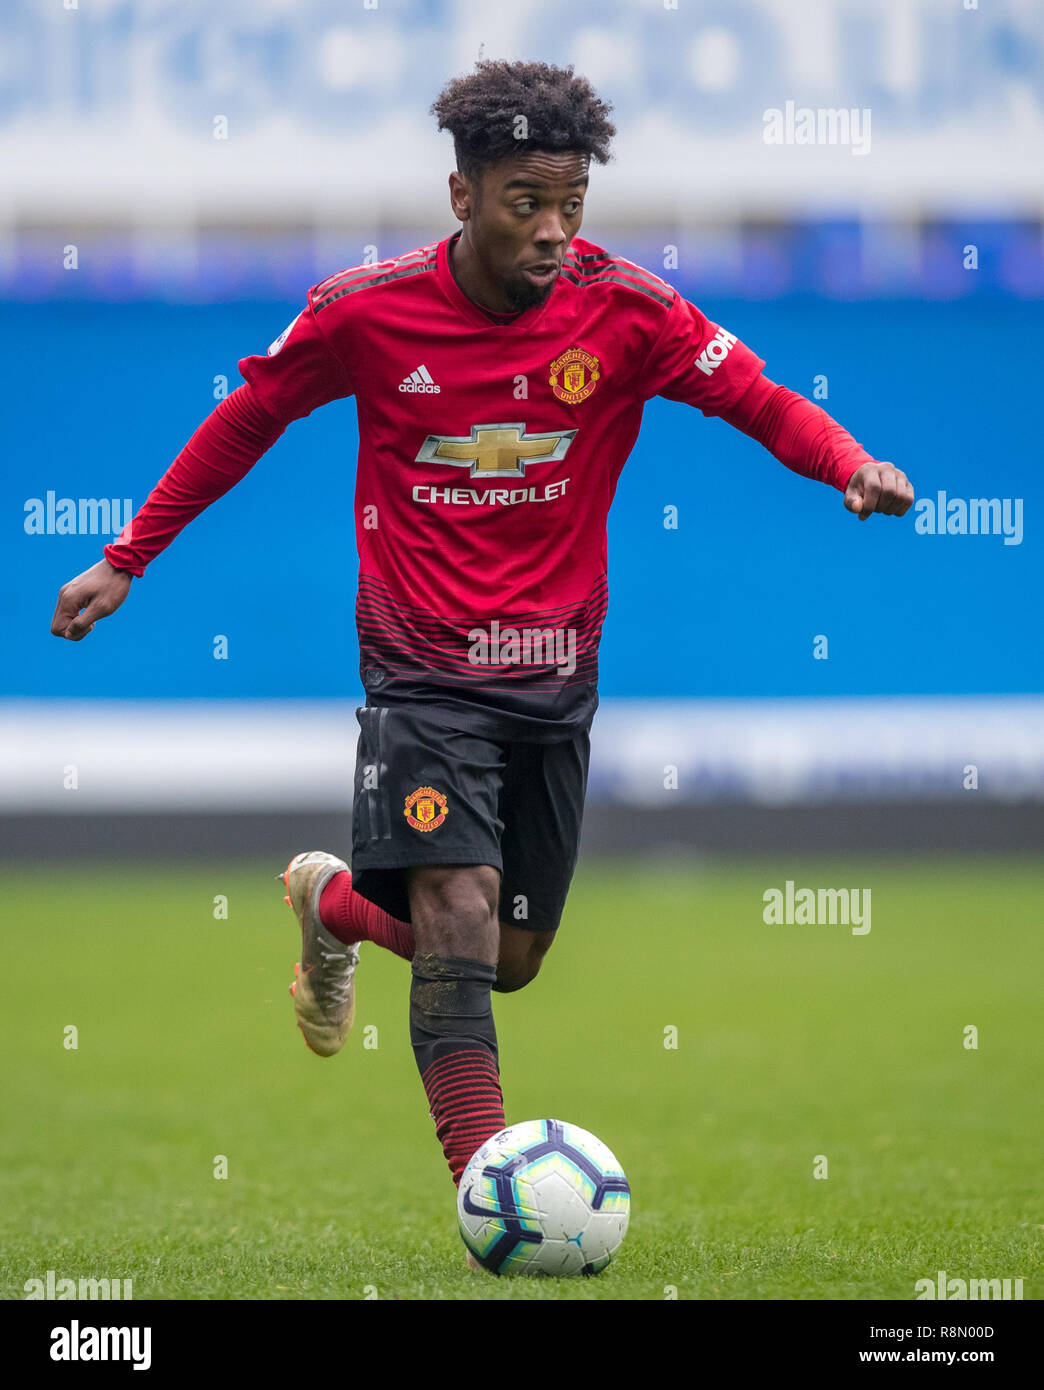 Reading Uk 16th Dec 2018 Angel Gomes Of Man Utd U23 During The Premier League 2 Division 2 Match Between Reading U23 And Manchester United U23 At The Madejski Stadium Reading England